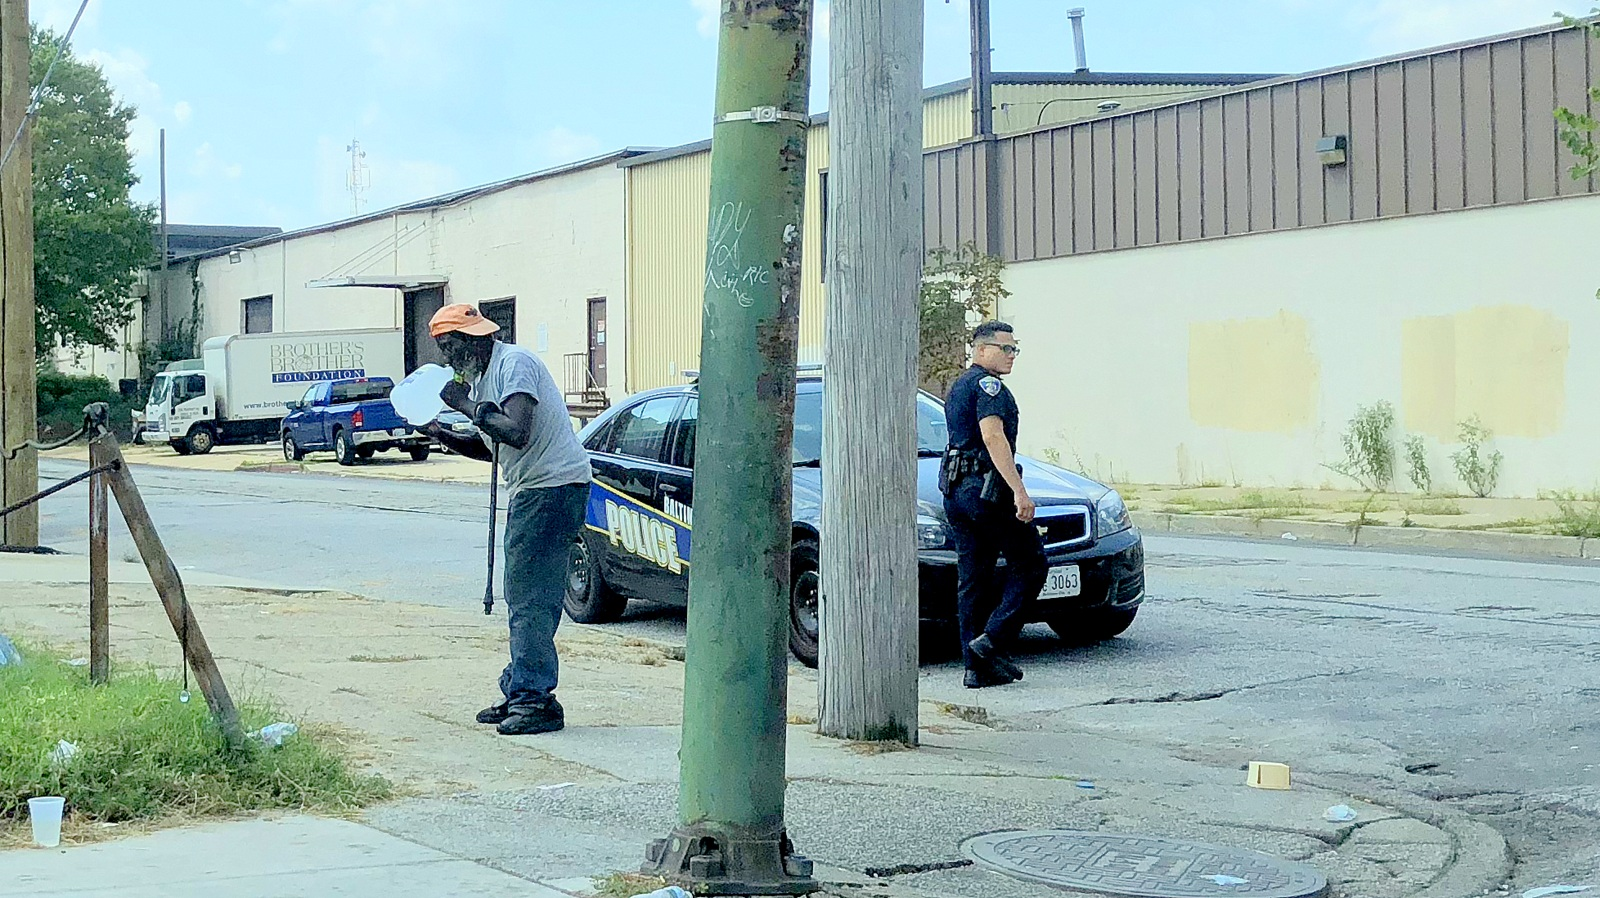 City police officer gives a man water on a hot day in Baltimore last week. (Fern Shen)